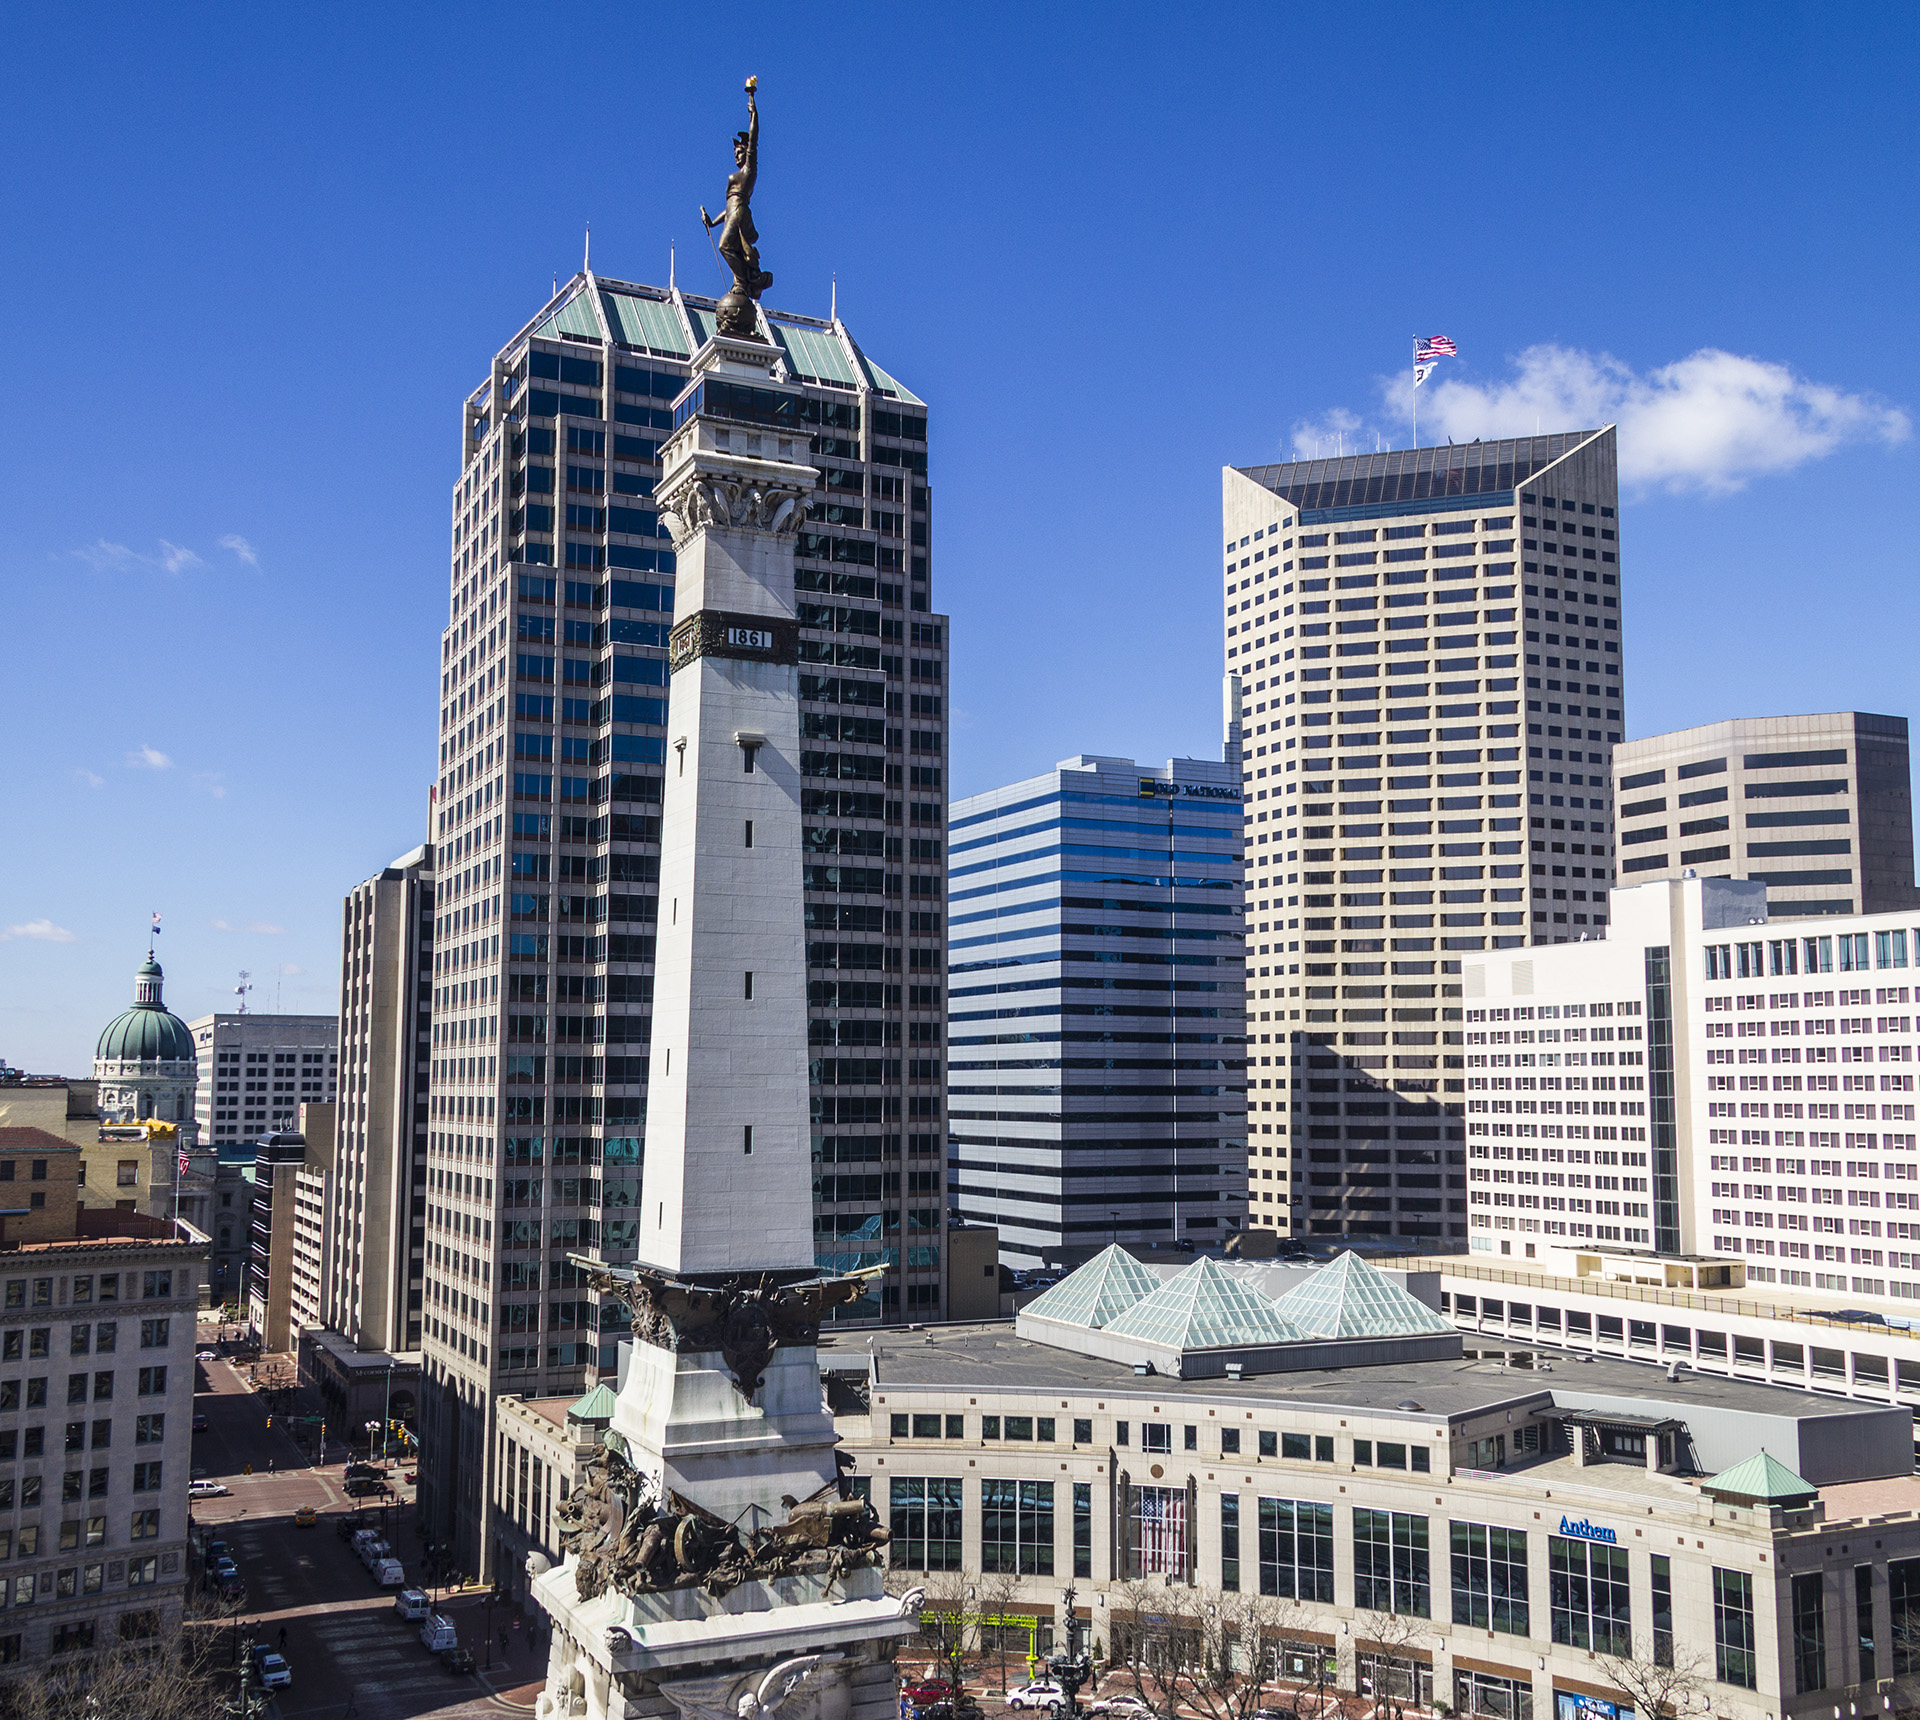 A view of downtown Indianapolis with a blue sky